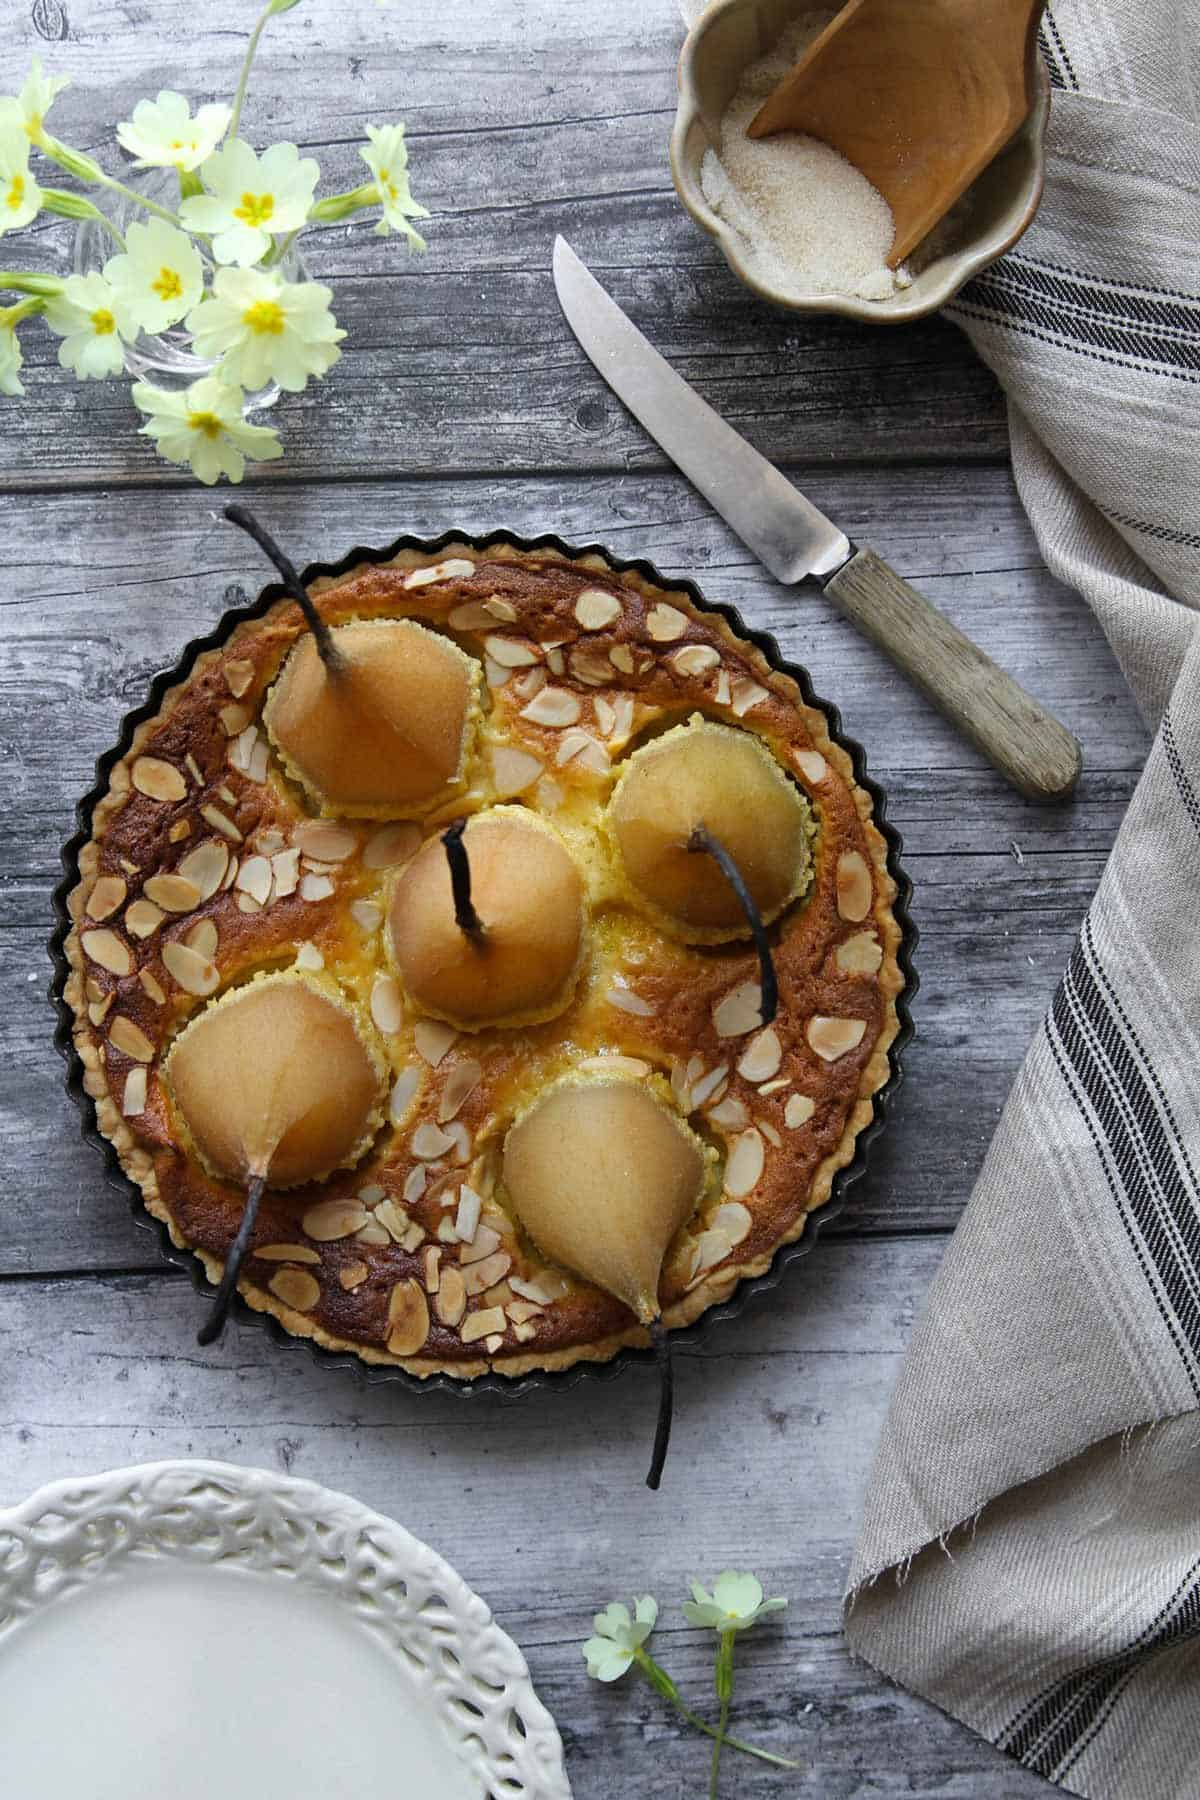 An overhead view of the round cake with five whole pears standing up in it.